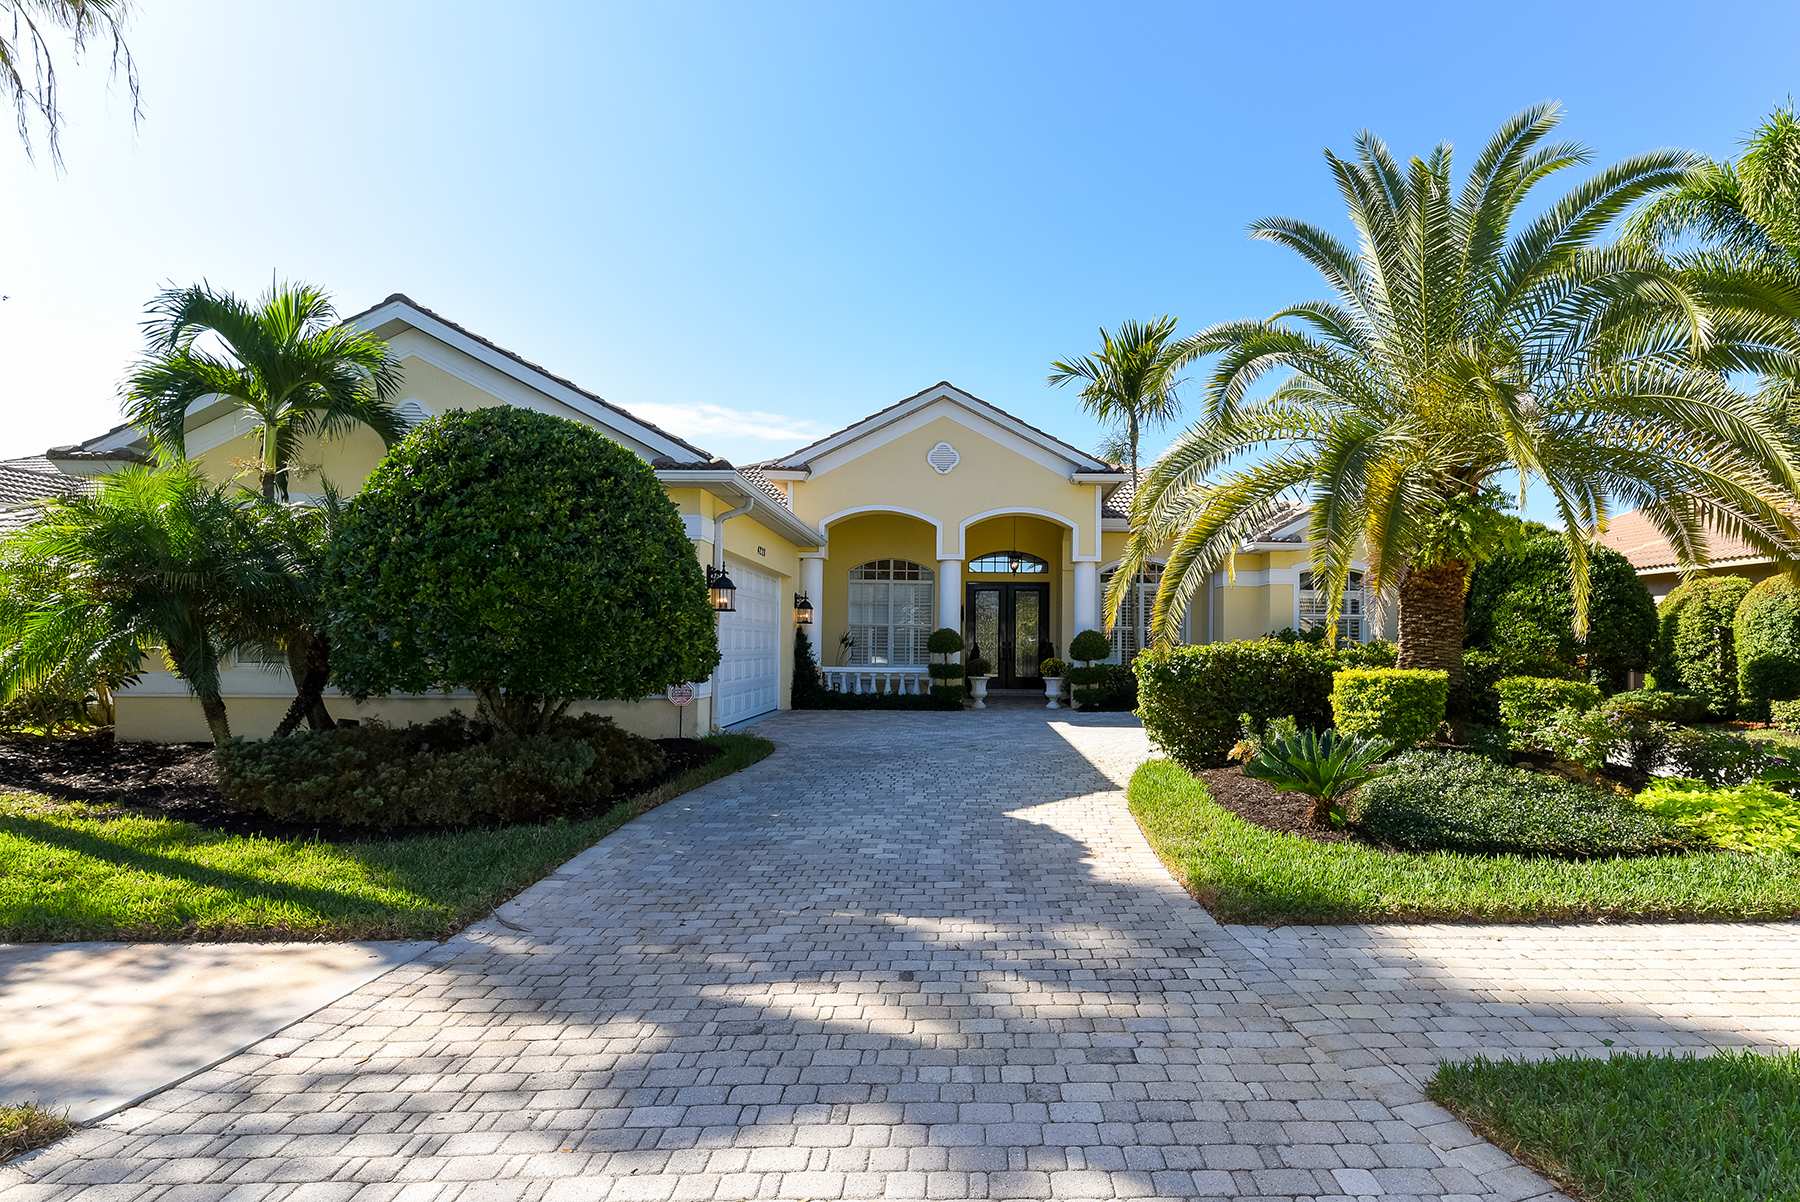 Single Family Home for Sale at VENETIA 4228 Corso Venetia Blvd Venice, Florida, 34293 United States